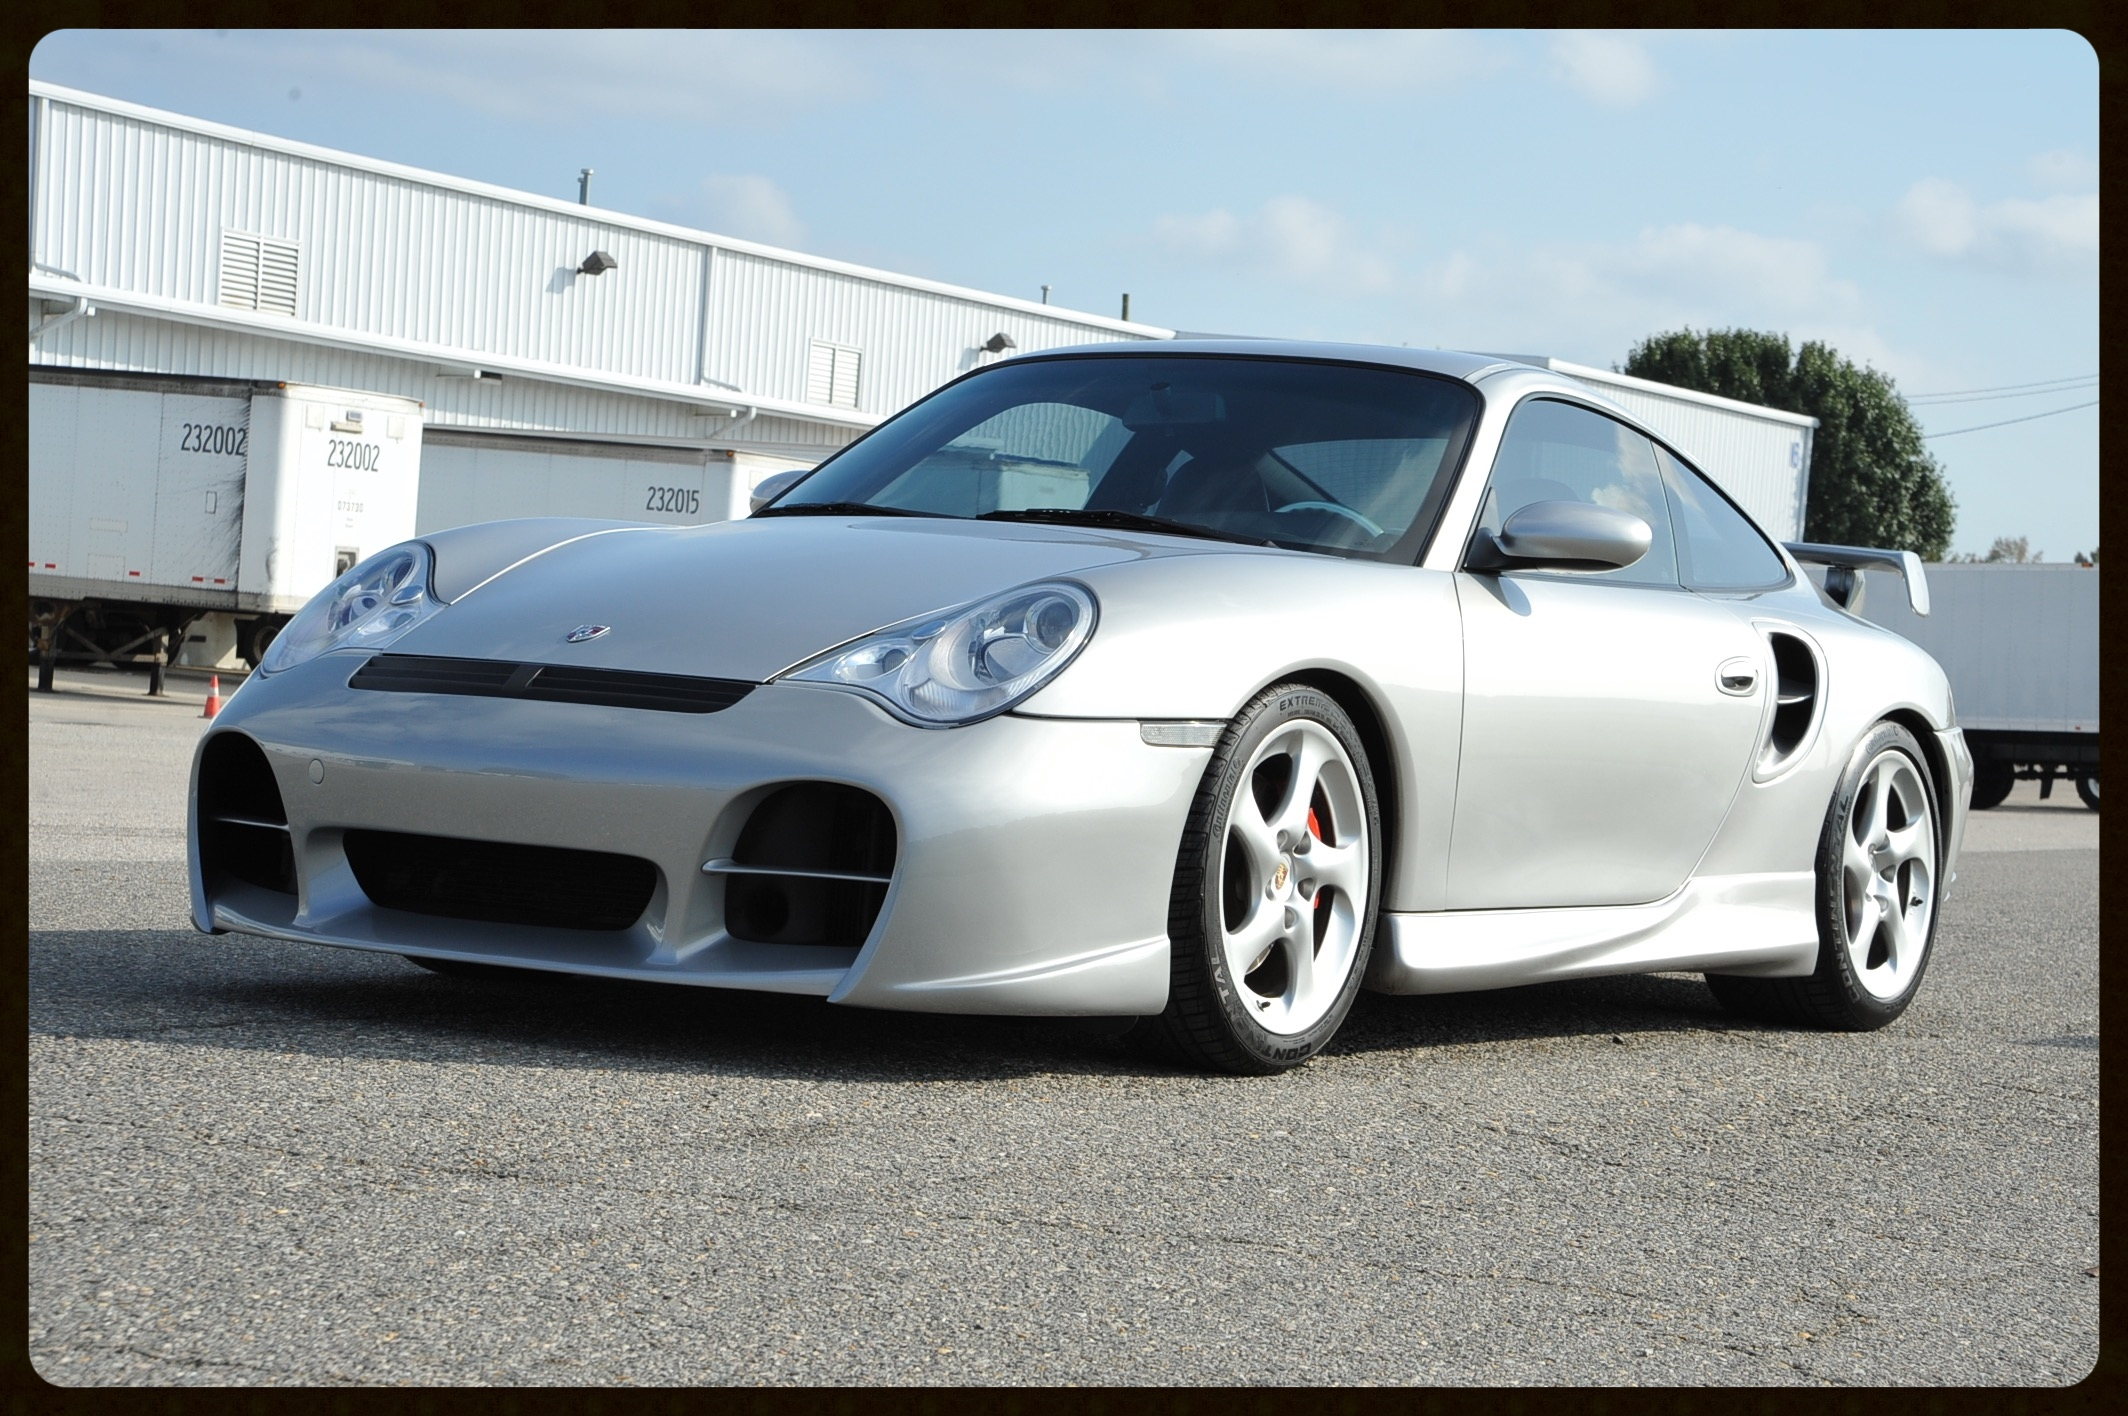 700 HP 911 Turbo...TechArt Body....Coilovers...and So Much More...Click for More Photos and Video